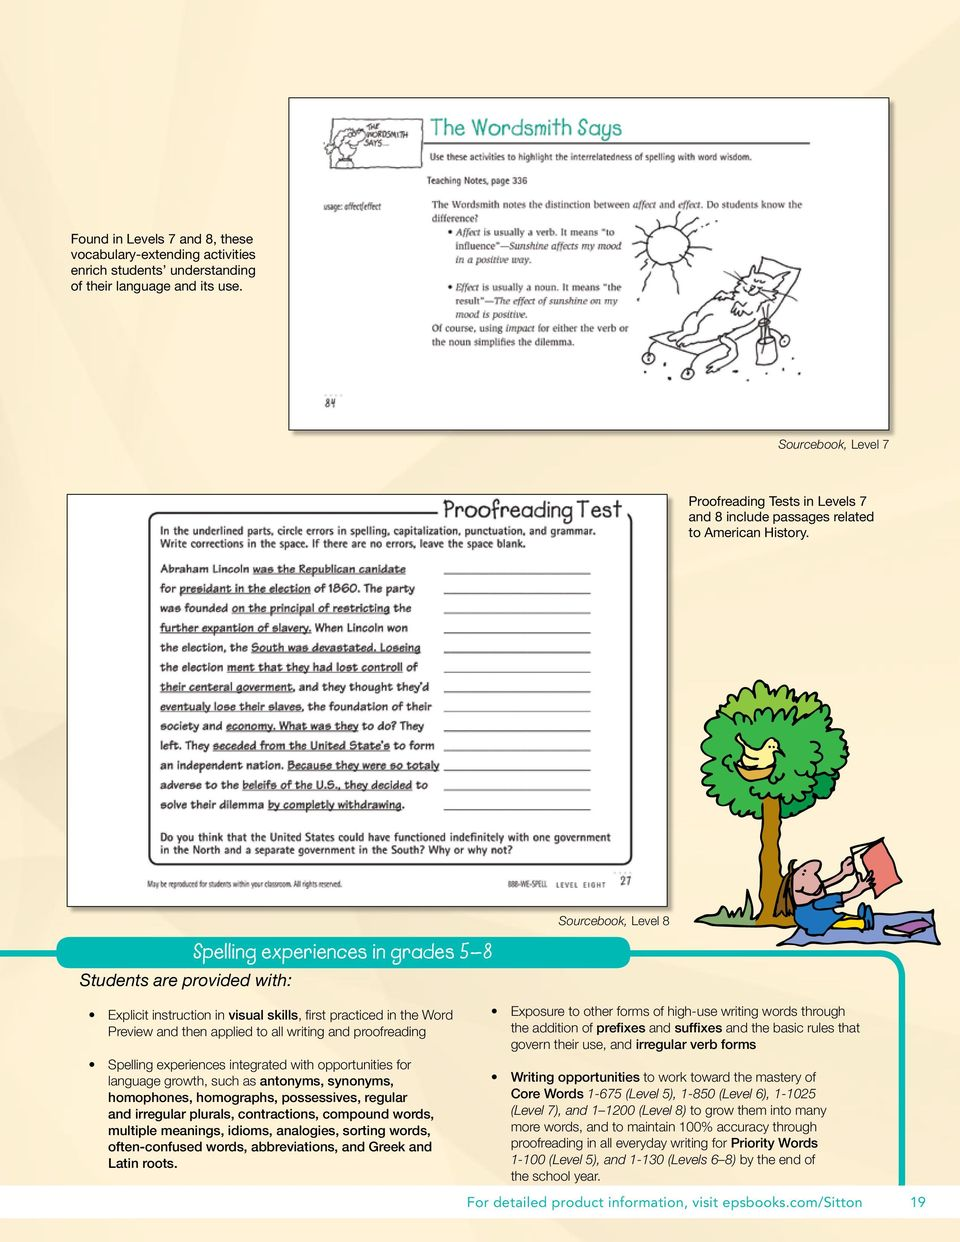 Students are provided with: Spelling experiences in grades 5 8 Sourcebook, Level 8 Explicit instruction in visual skills, first practiced in the Word Preview and then applied to all writing and